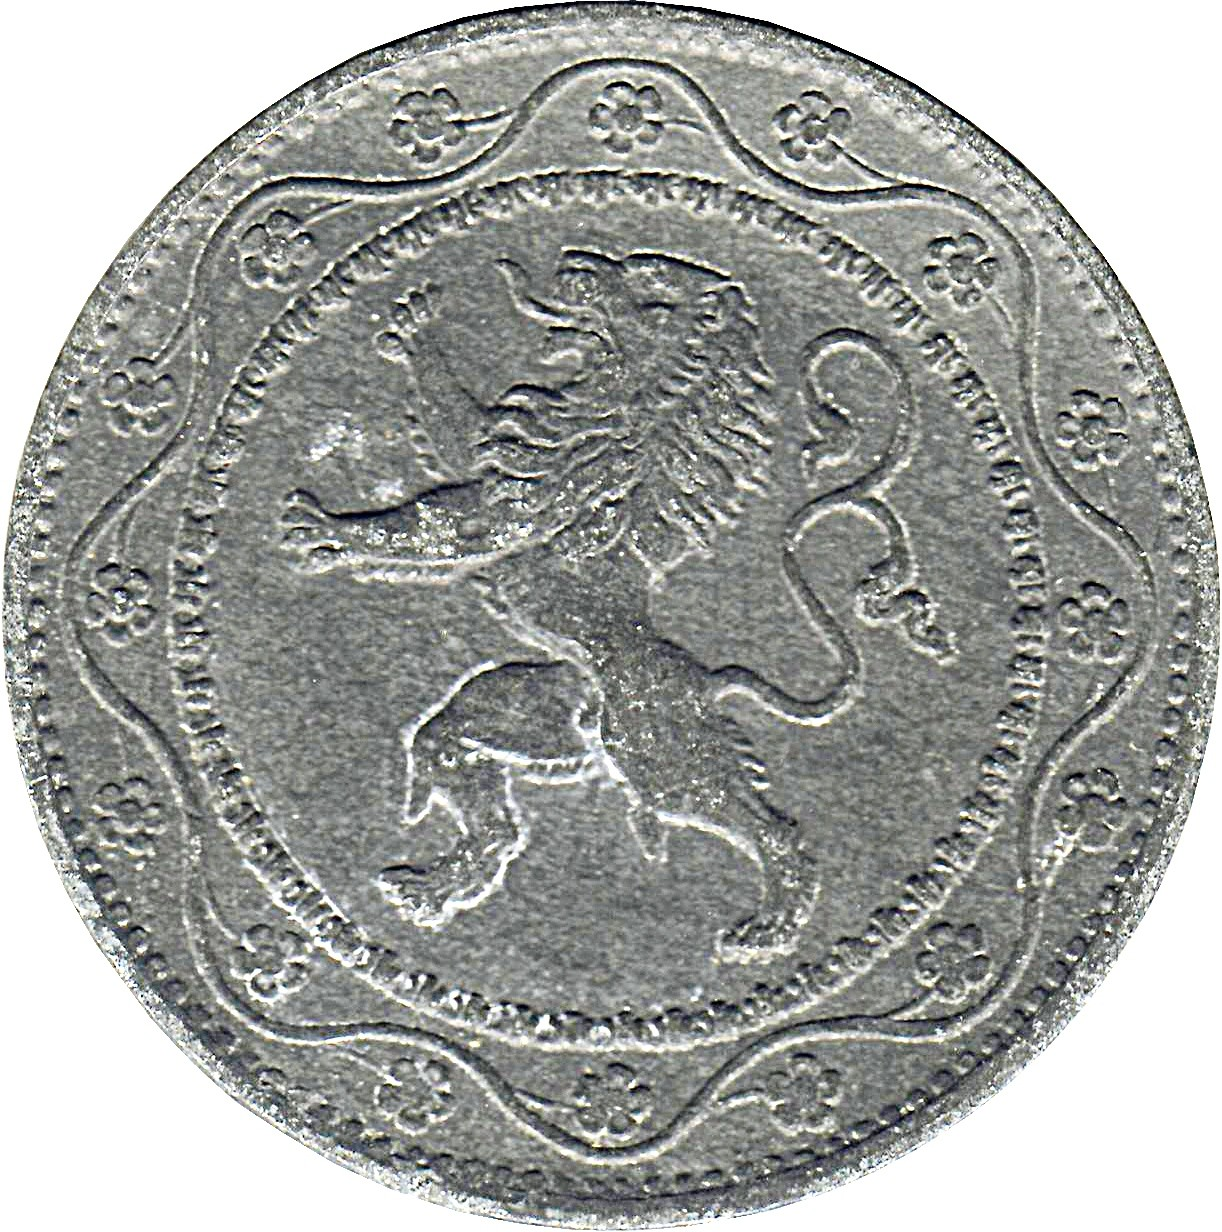 Belgium 25 Centimes (1915-1918 German Occupation Coinage)